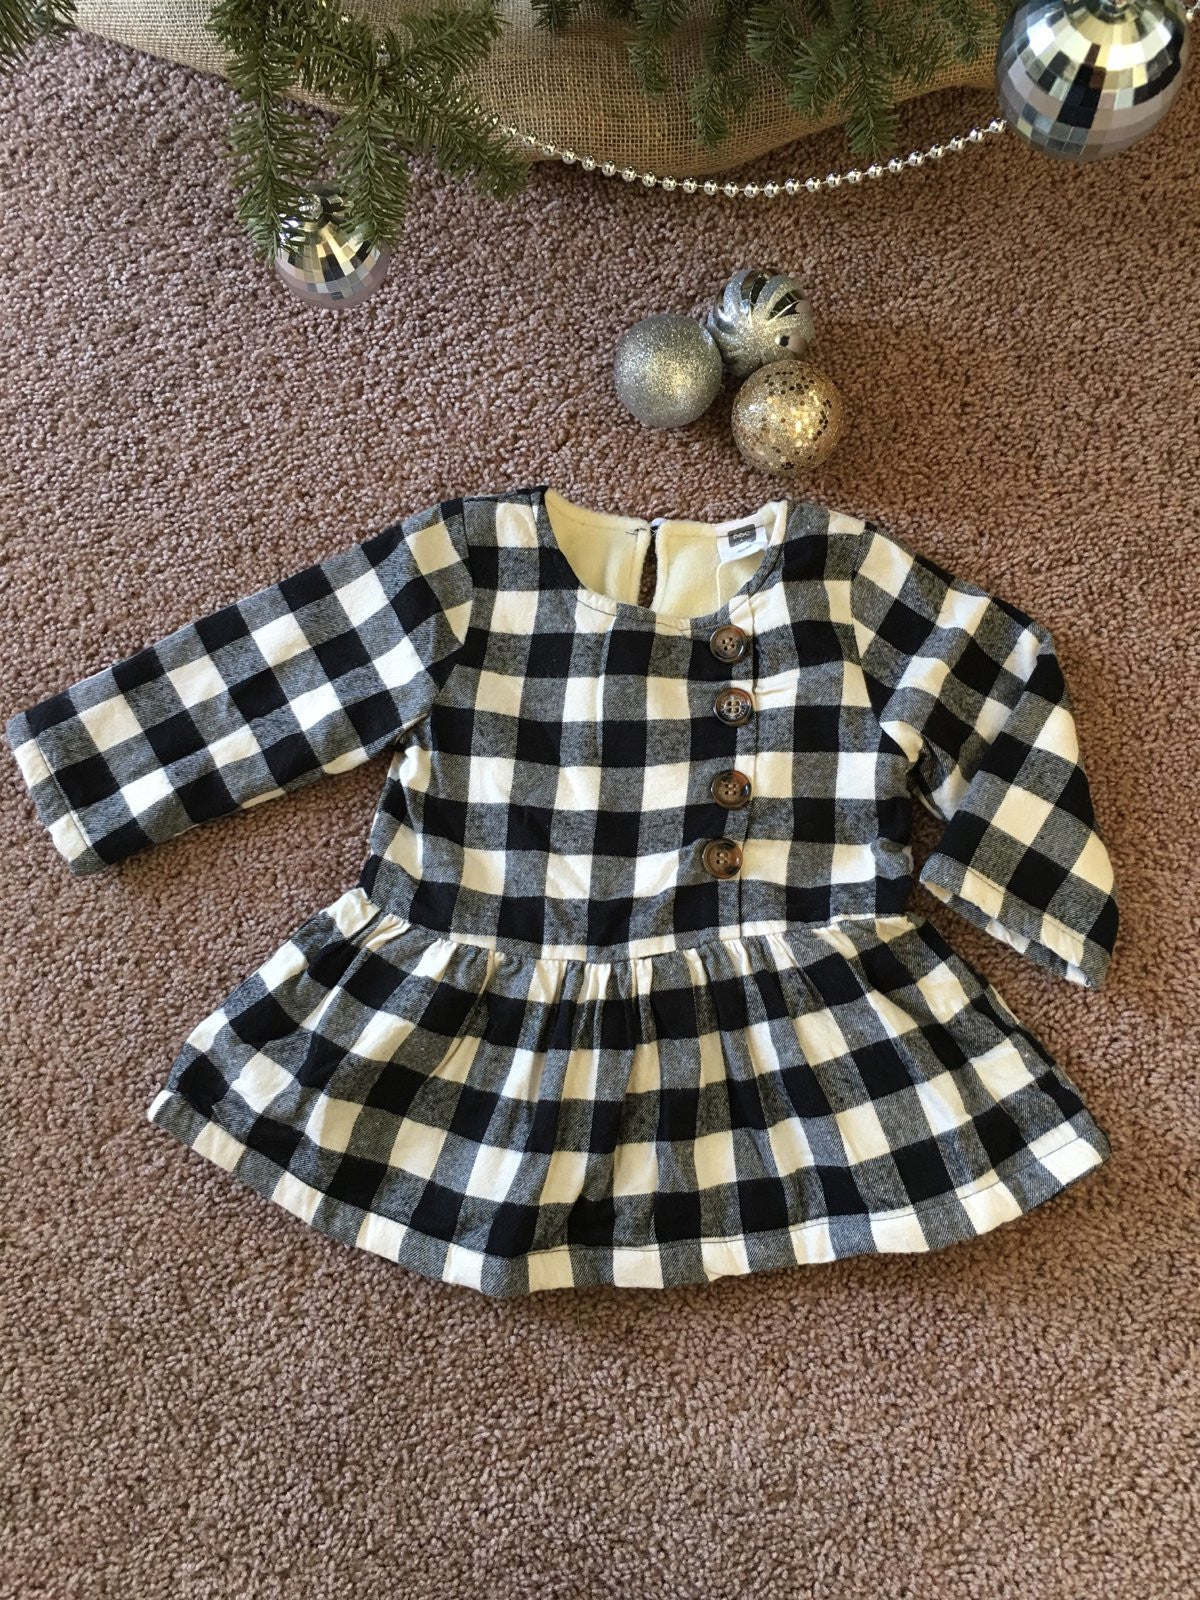 Carolina plaid dress